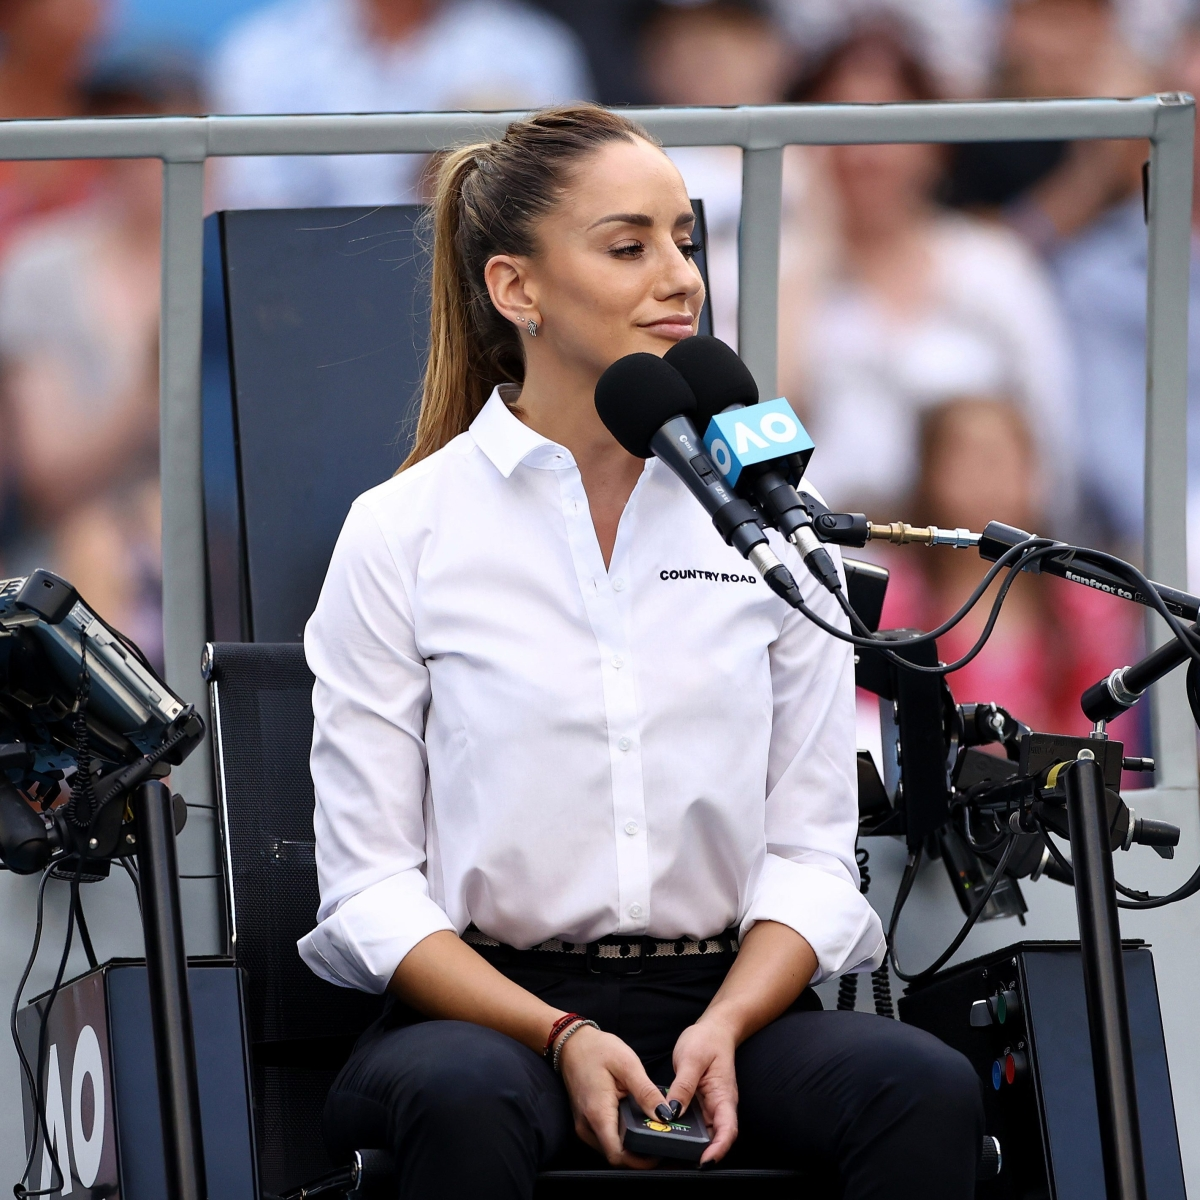 Australian Open: Who is Marijana Veljovic? Everything you need to know about the chair umpire who stole the show